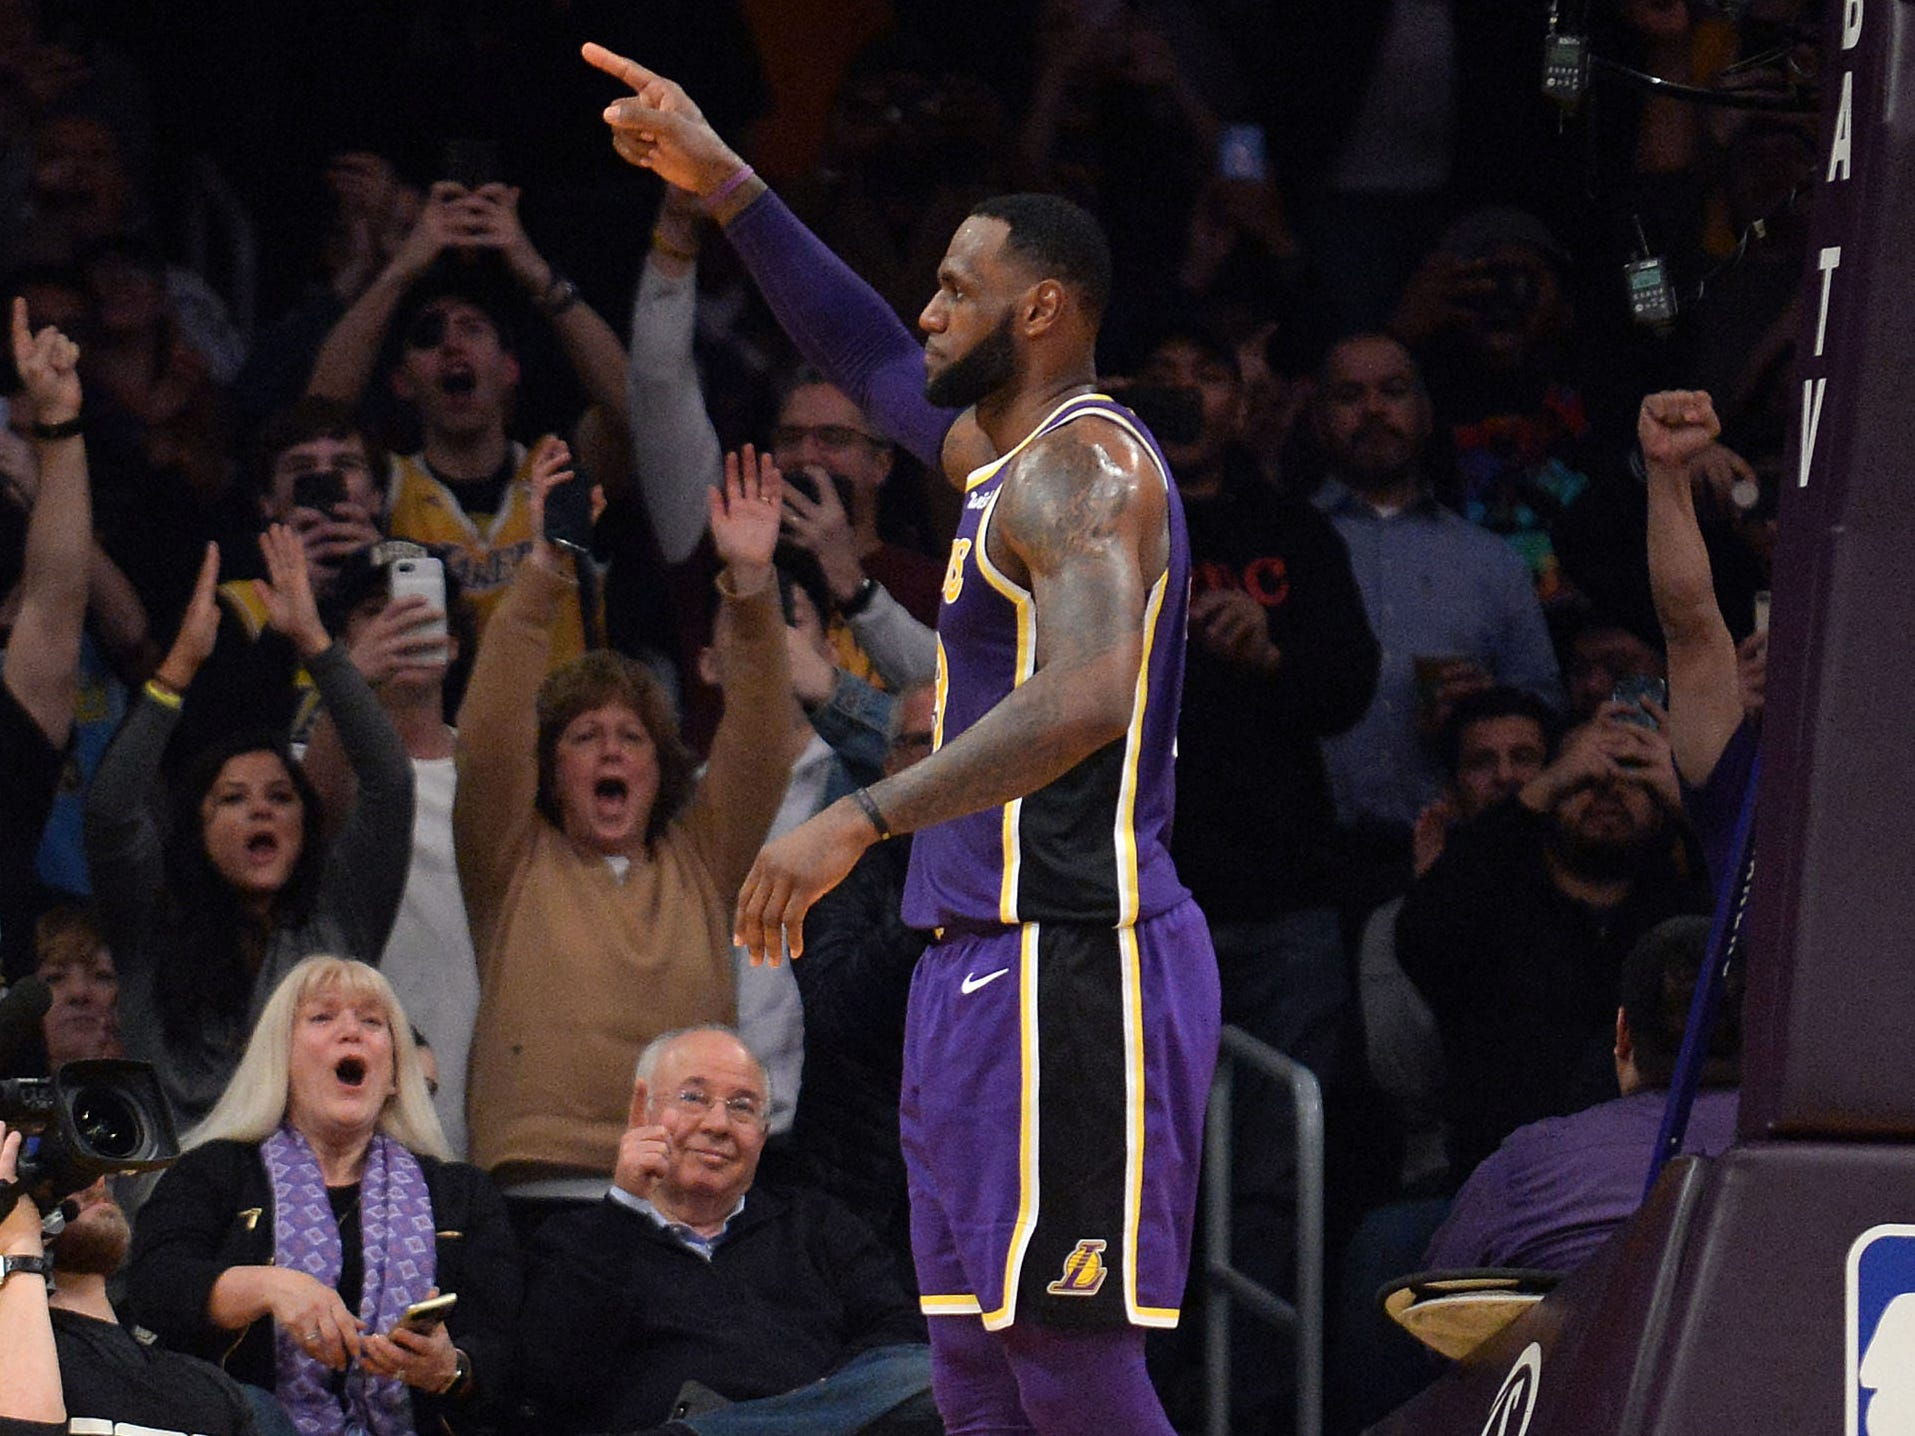 March 6: Lakers forward LeBron James celebrates after hitting a driving layup to pass Michael Jordan for fourth place on the NBA's all-time scoring list.